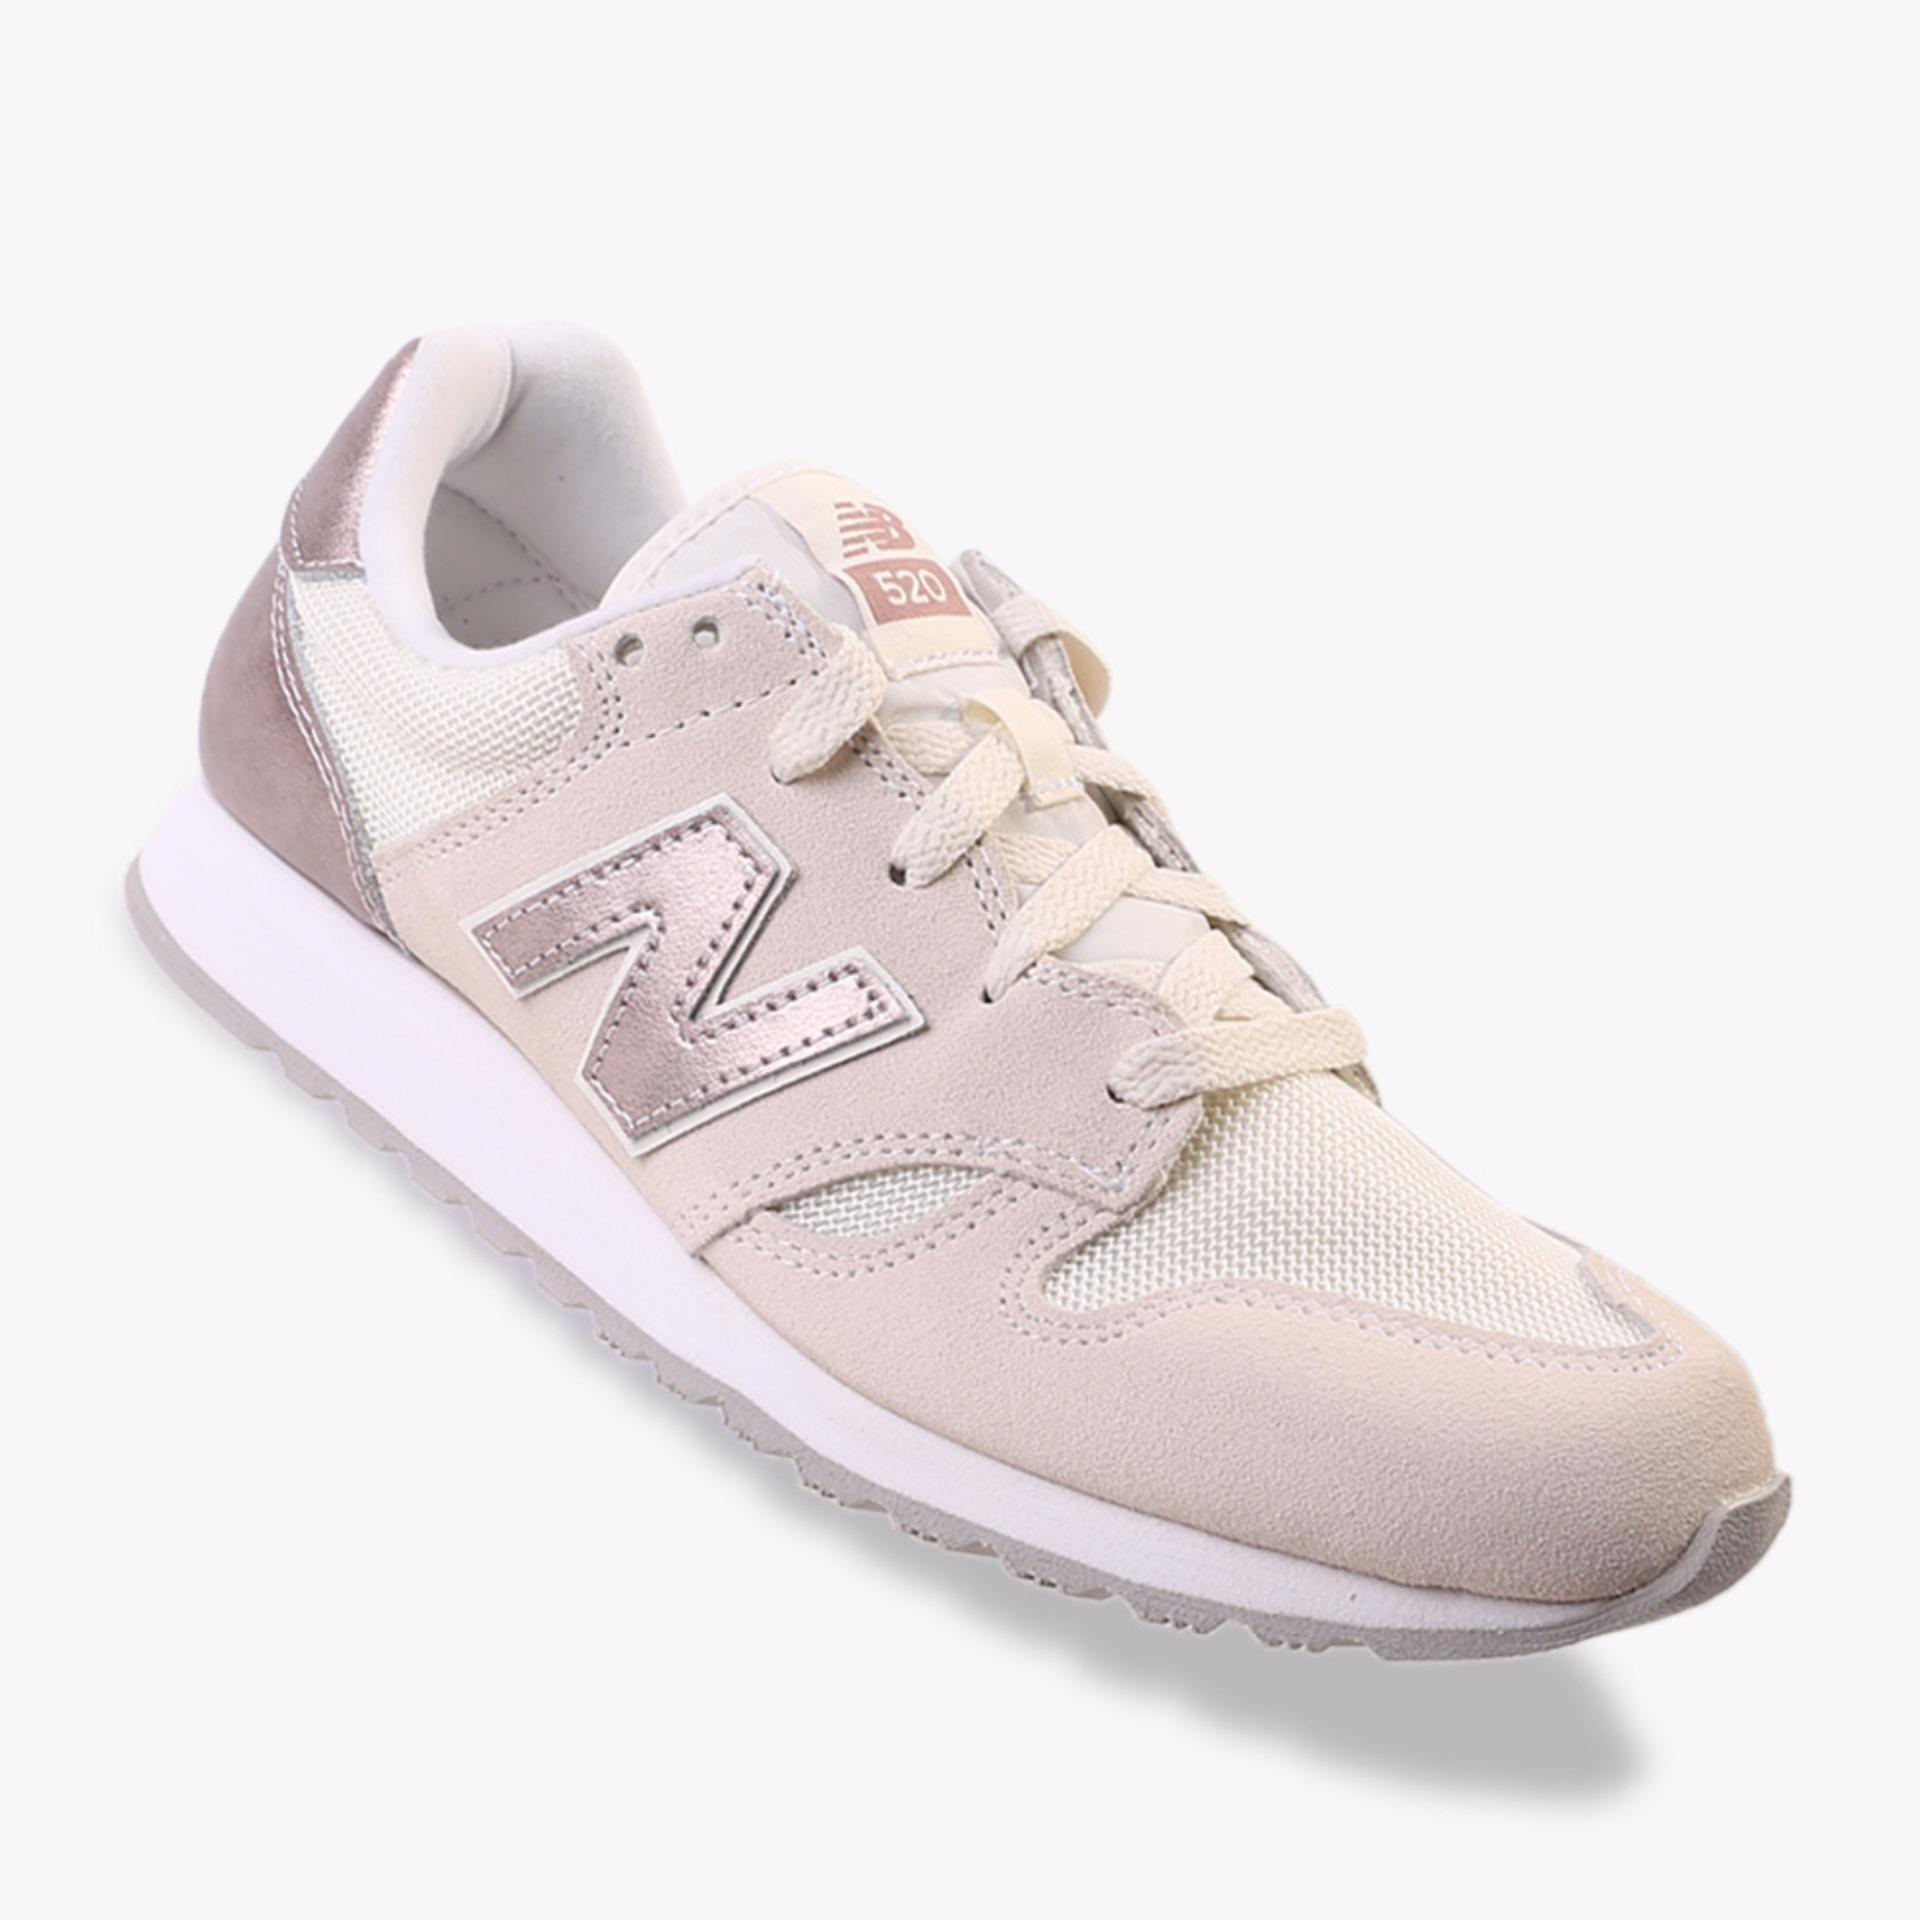 Harga New Balance 520 Women S Lifestyle Shoes Cream Branded